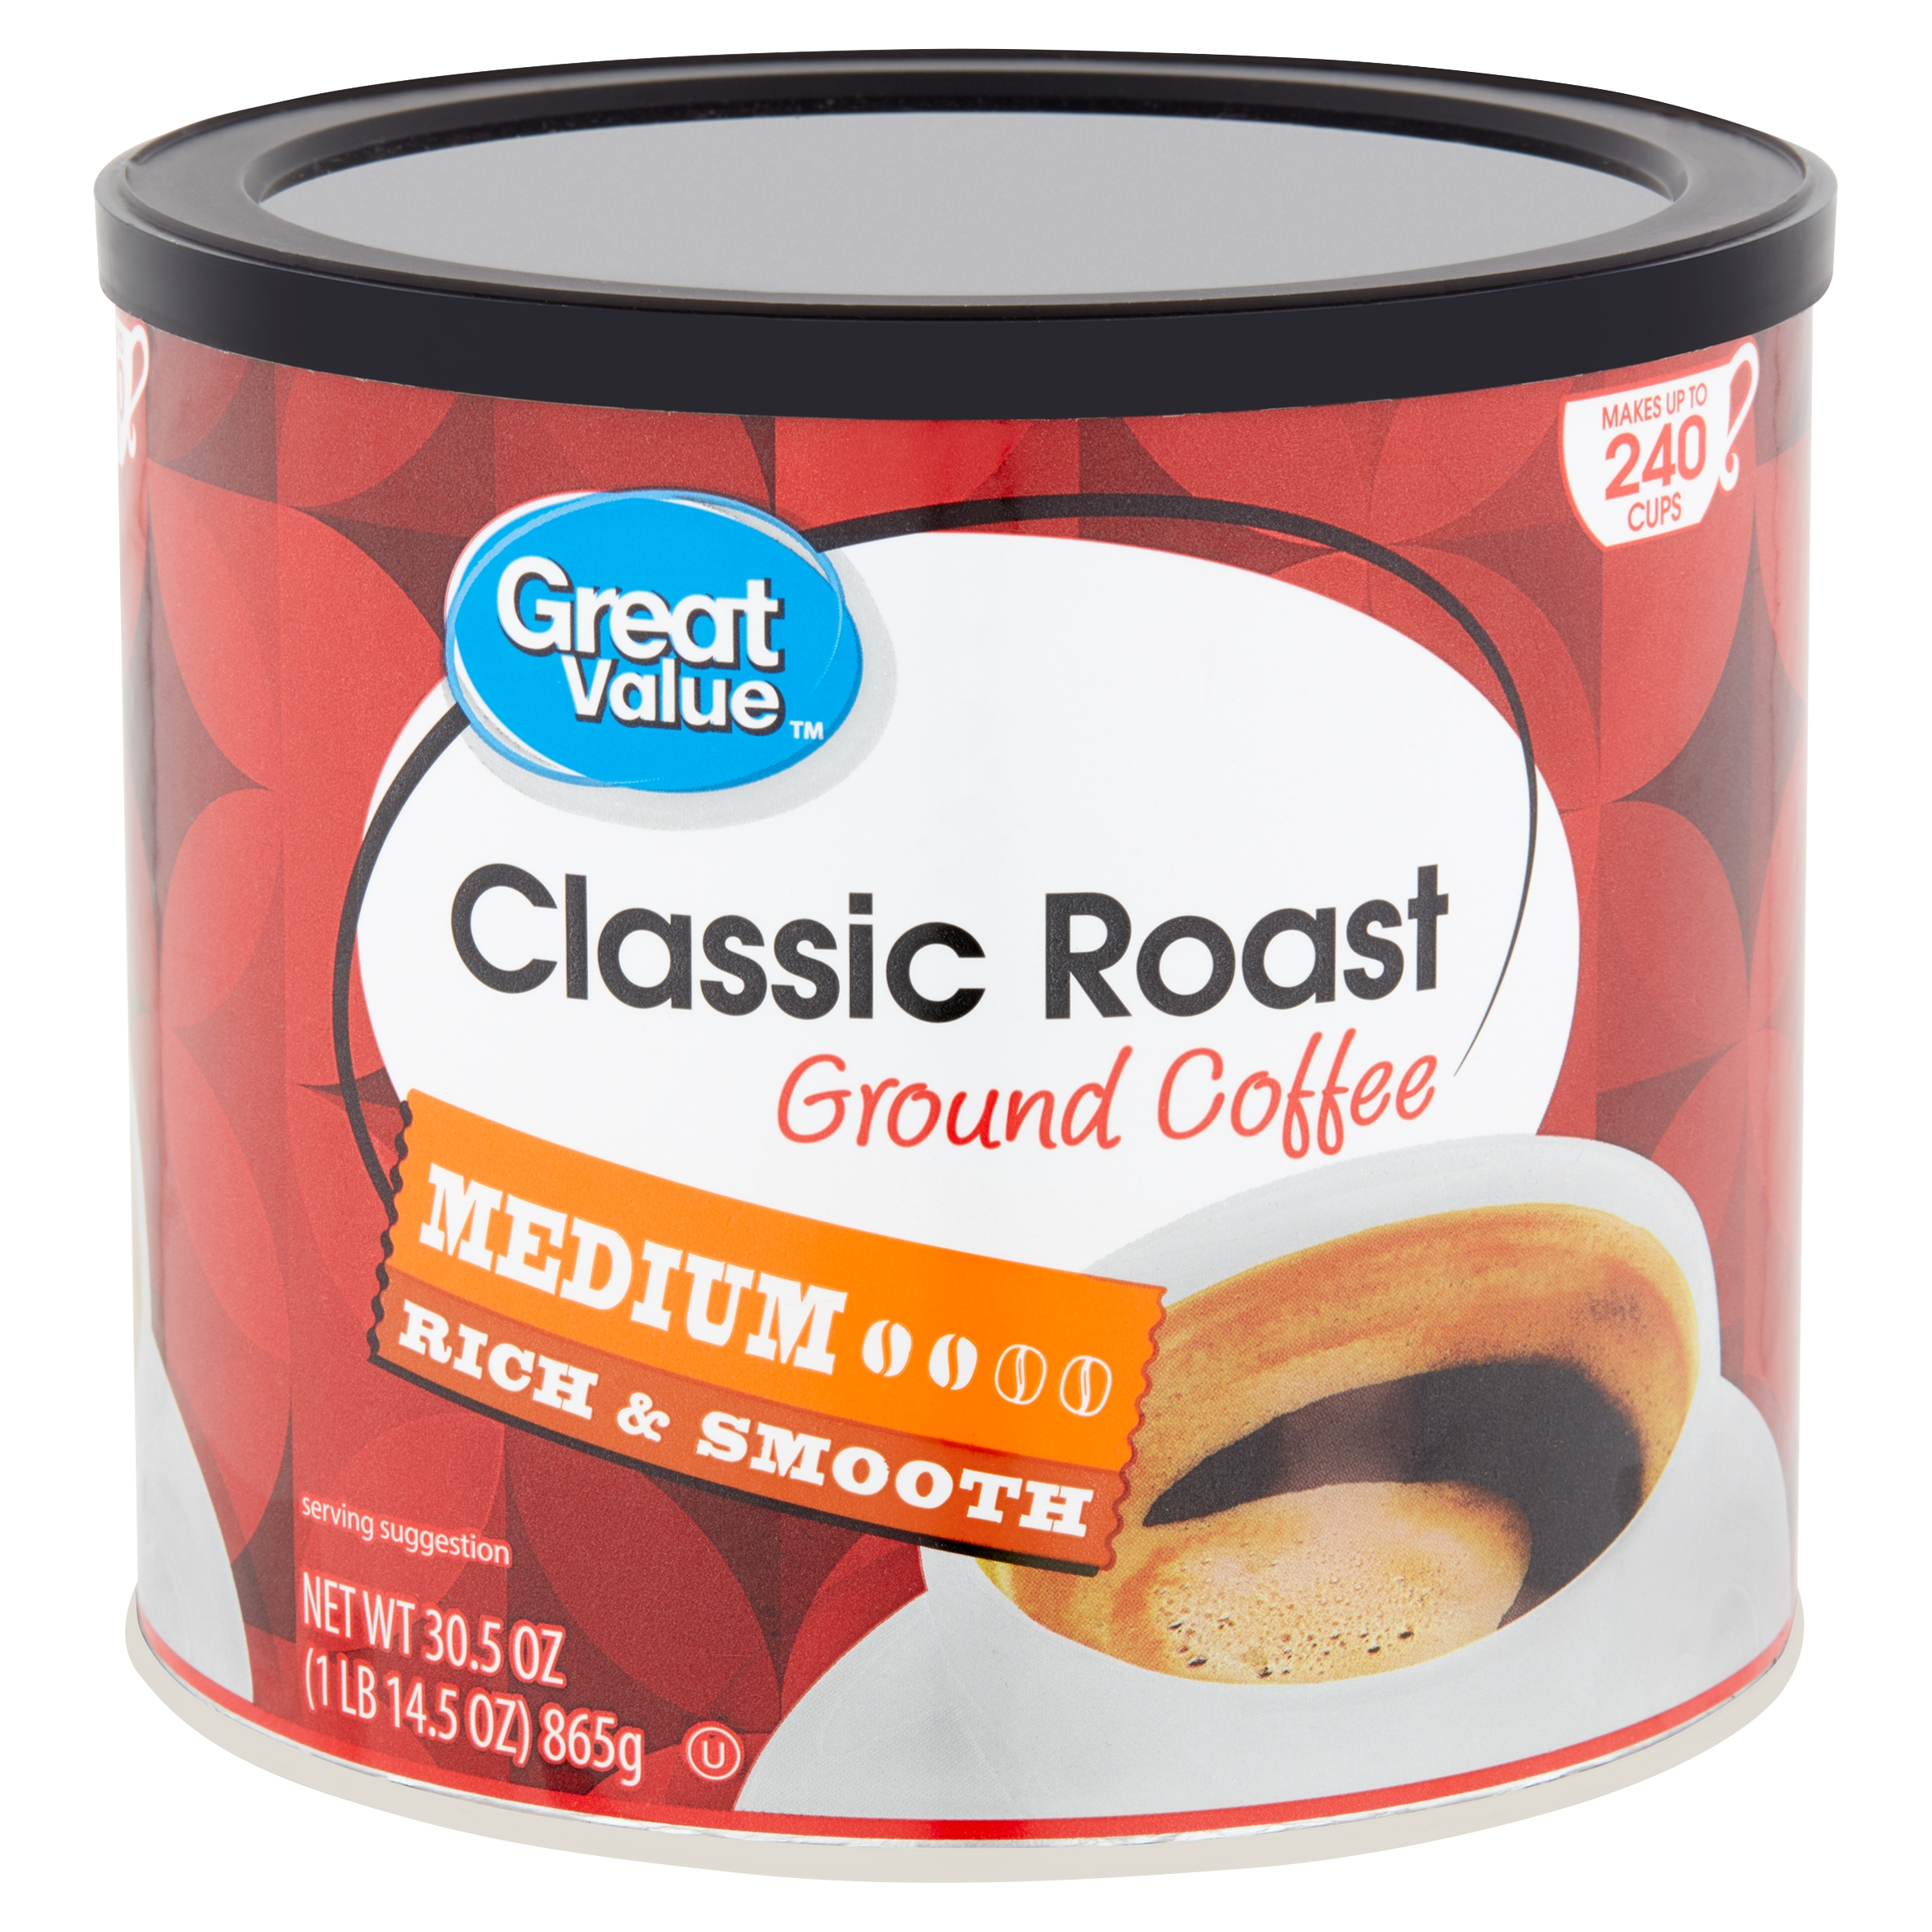 Great Value Classic Roast Medium Ground Coffee, 30.5 oz